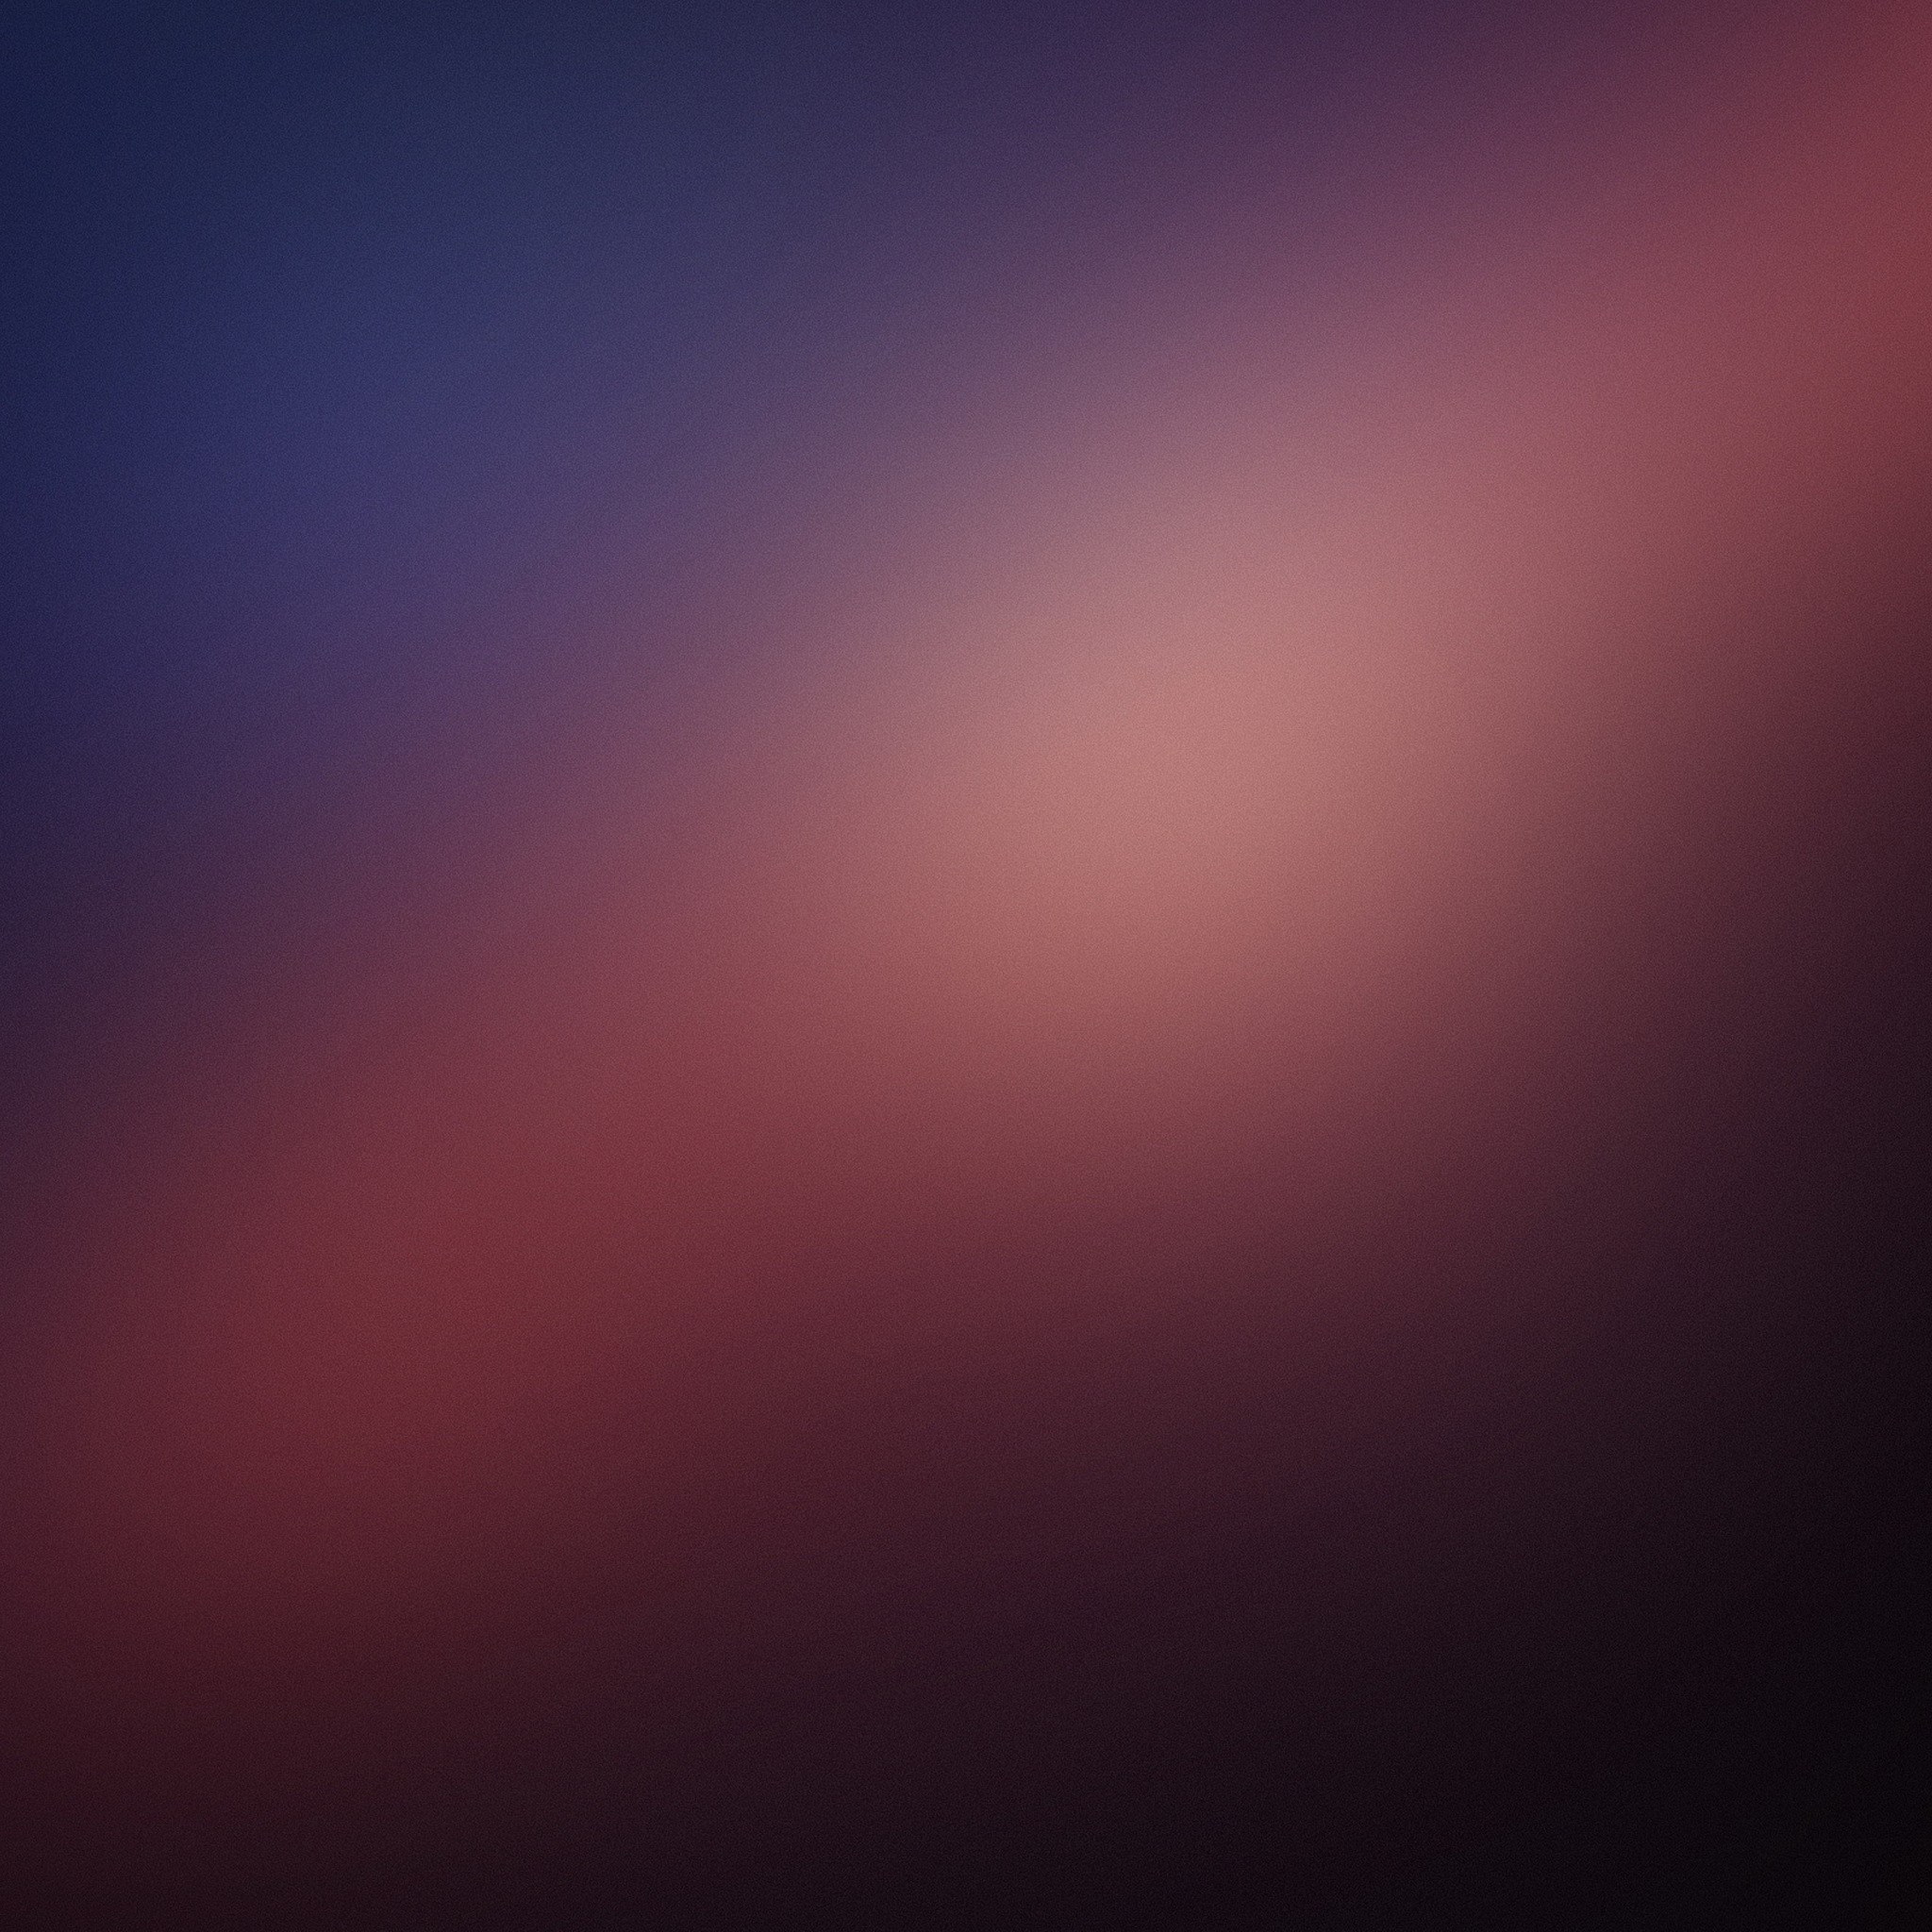 blury-background-l8.jpg